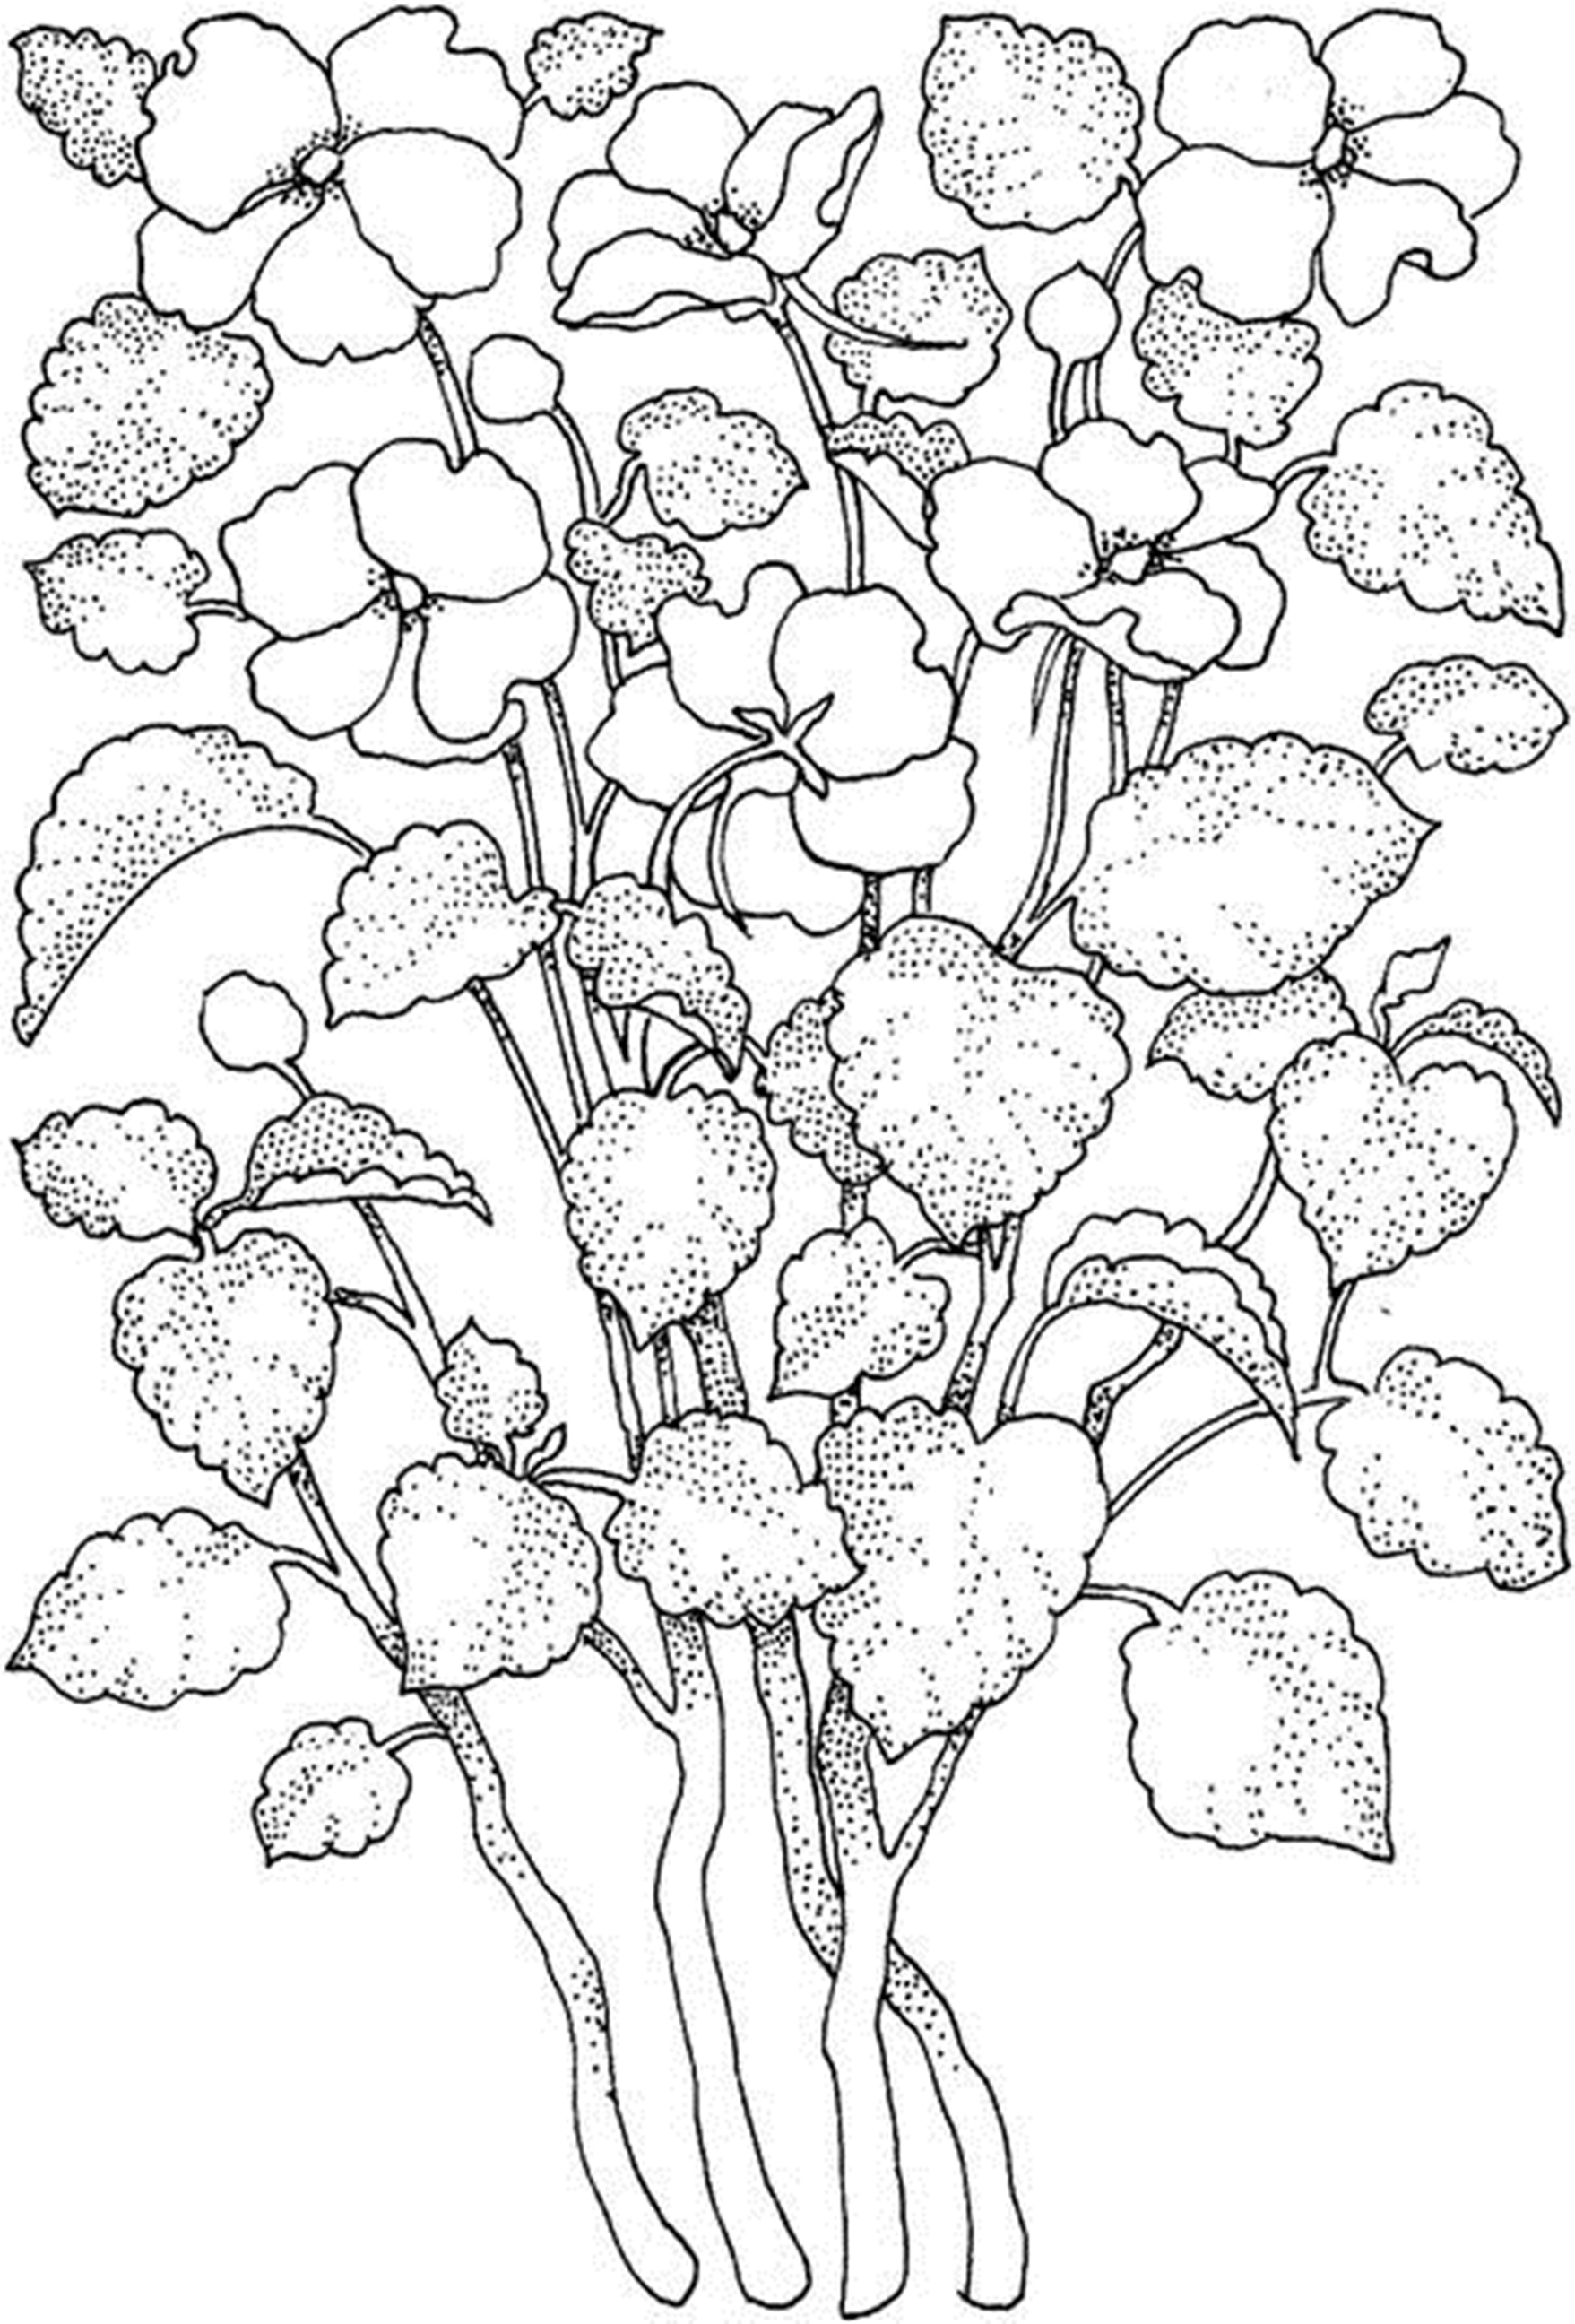 flower coloring pages printables free printable flower coloring pages for kids best pages printables coloring flower